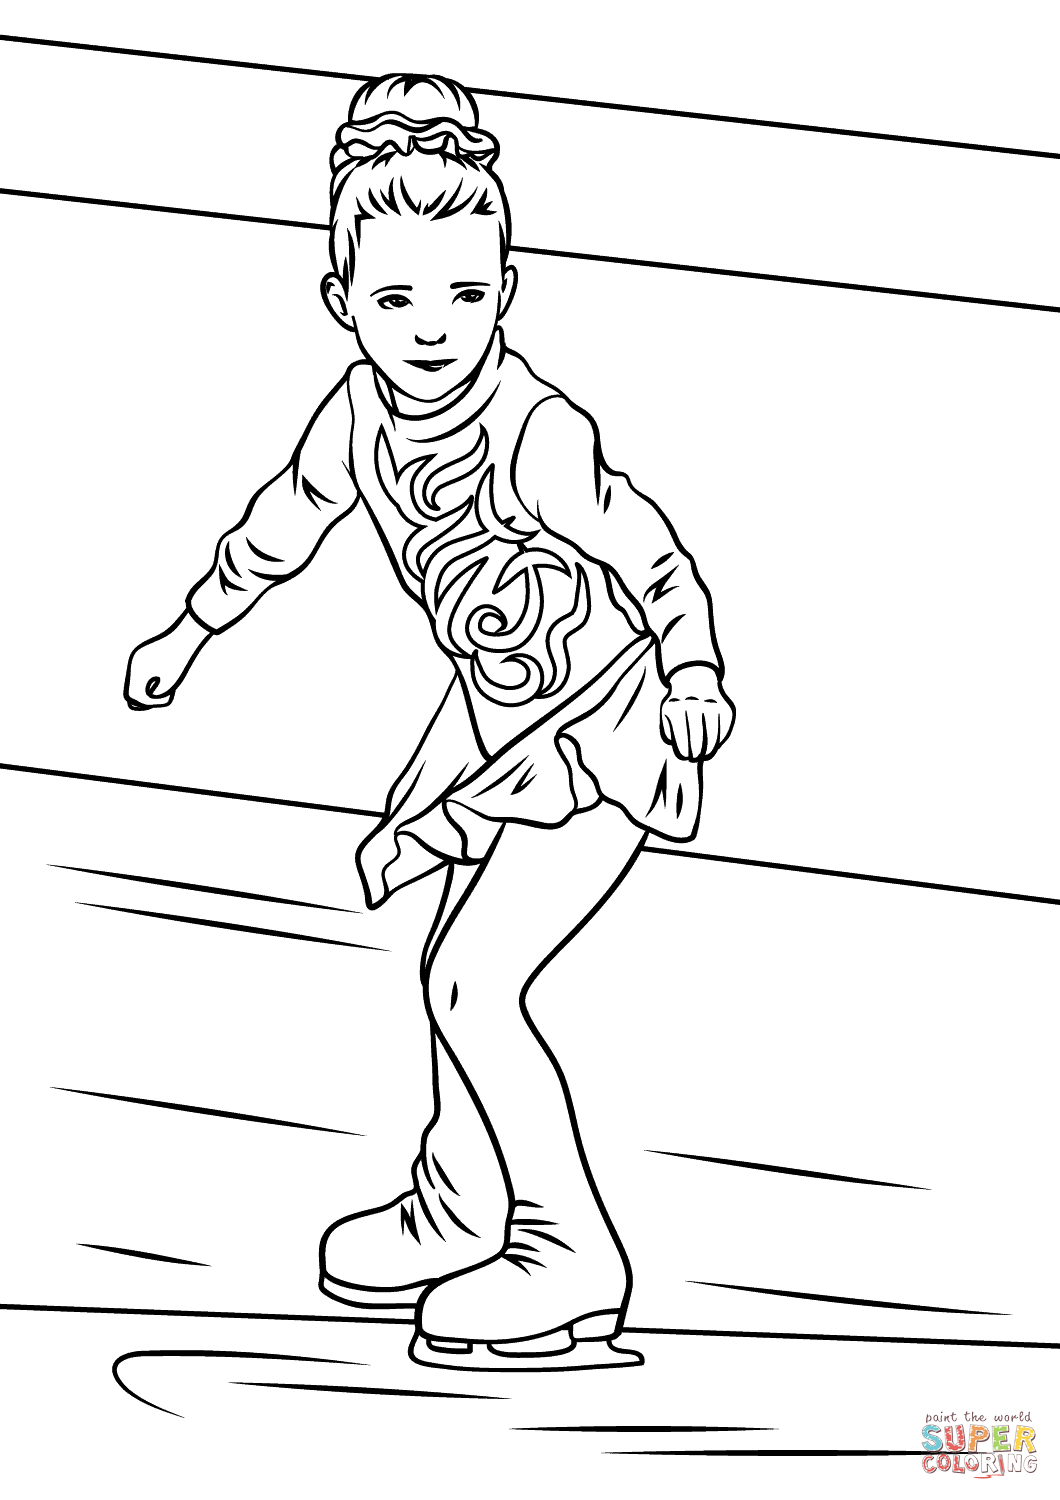 Figure Skater Drawing At Getdrawings Free Download